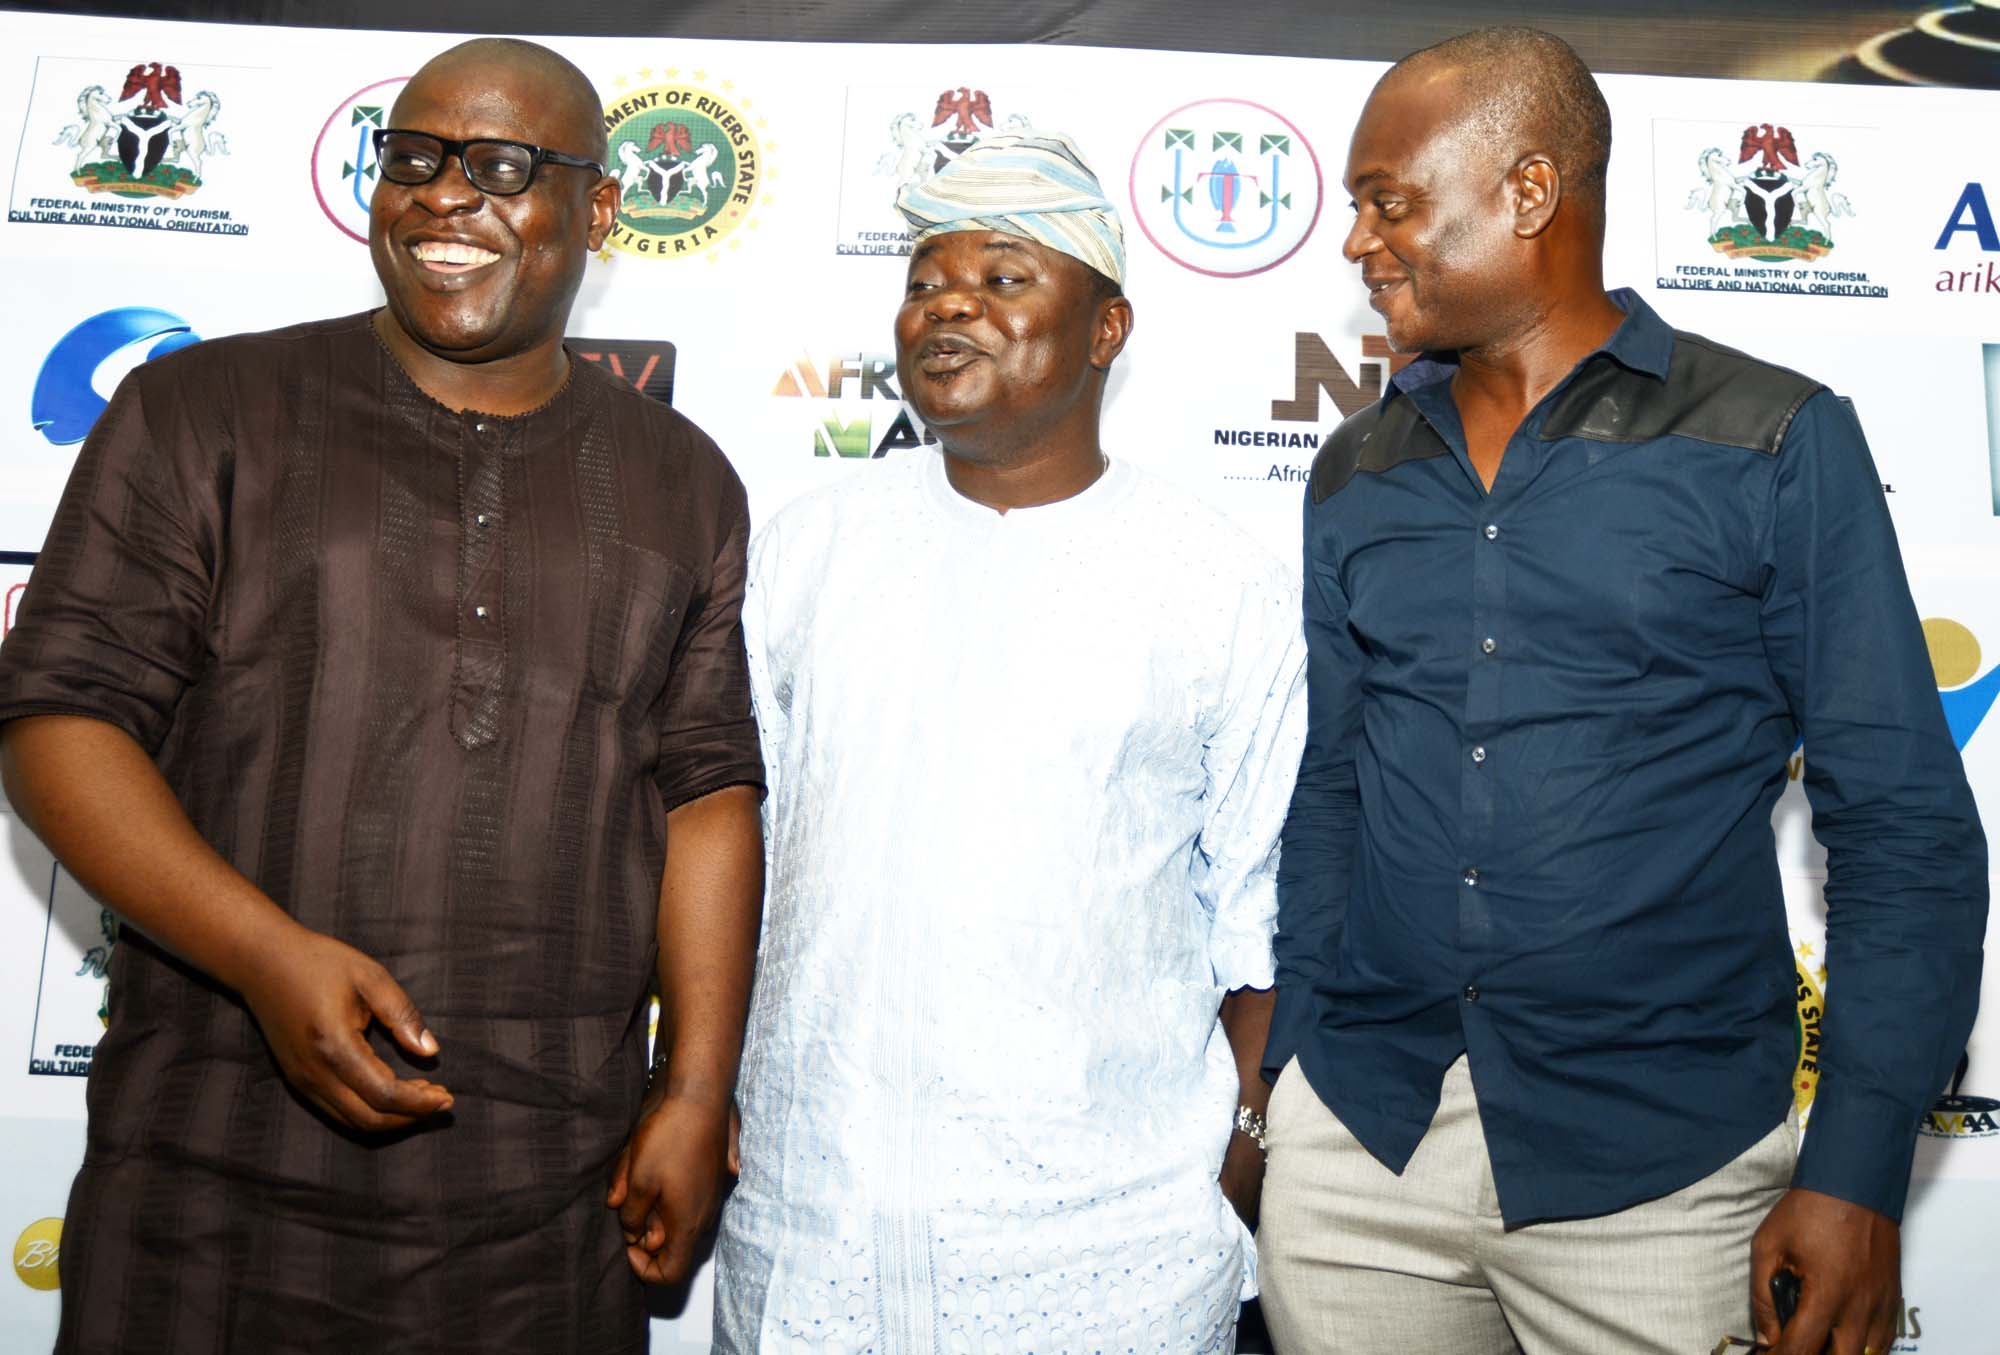 Shaibu Husseini, President Africa Movies Academy Awards 2016 Board ofJury, Biodun Kupoluyi, Publisher of E247 Magazine, and Tony Anih, Director of Administration, AMAA at on May 15, 2016 at a media event which took place at Protea Hotel in Ikeja, Lagos, Nigeria